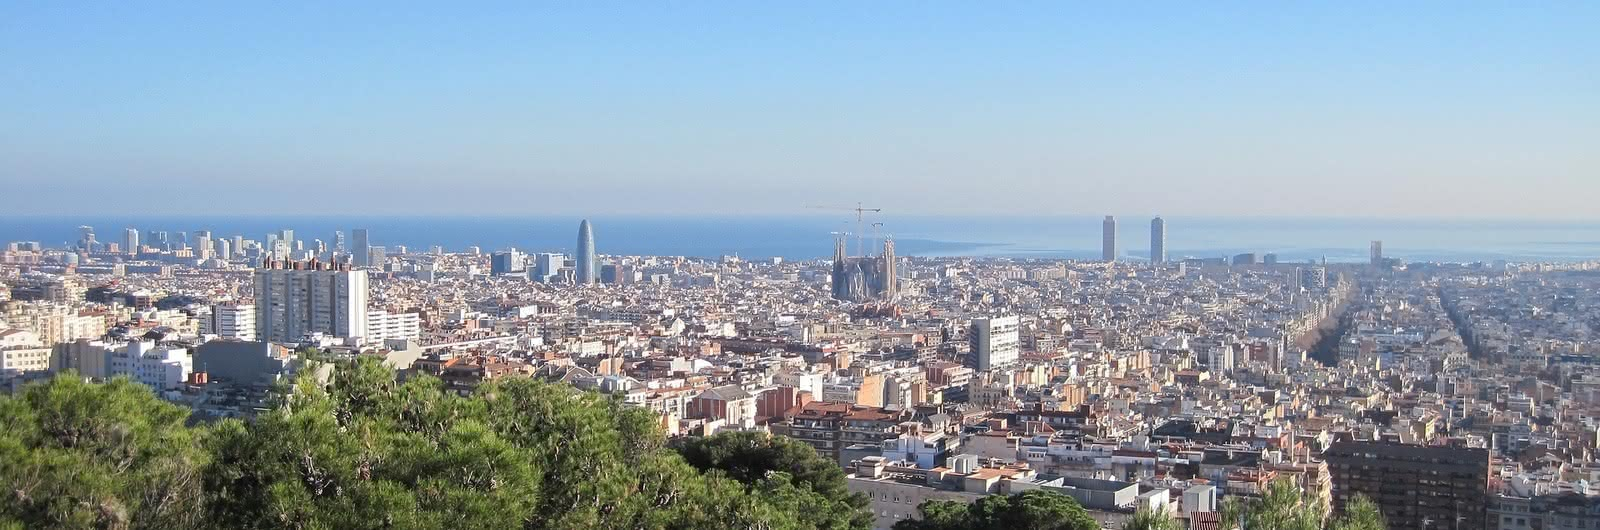 barcelona city header